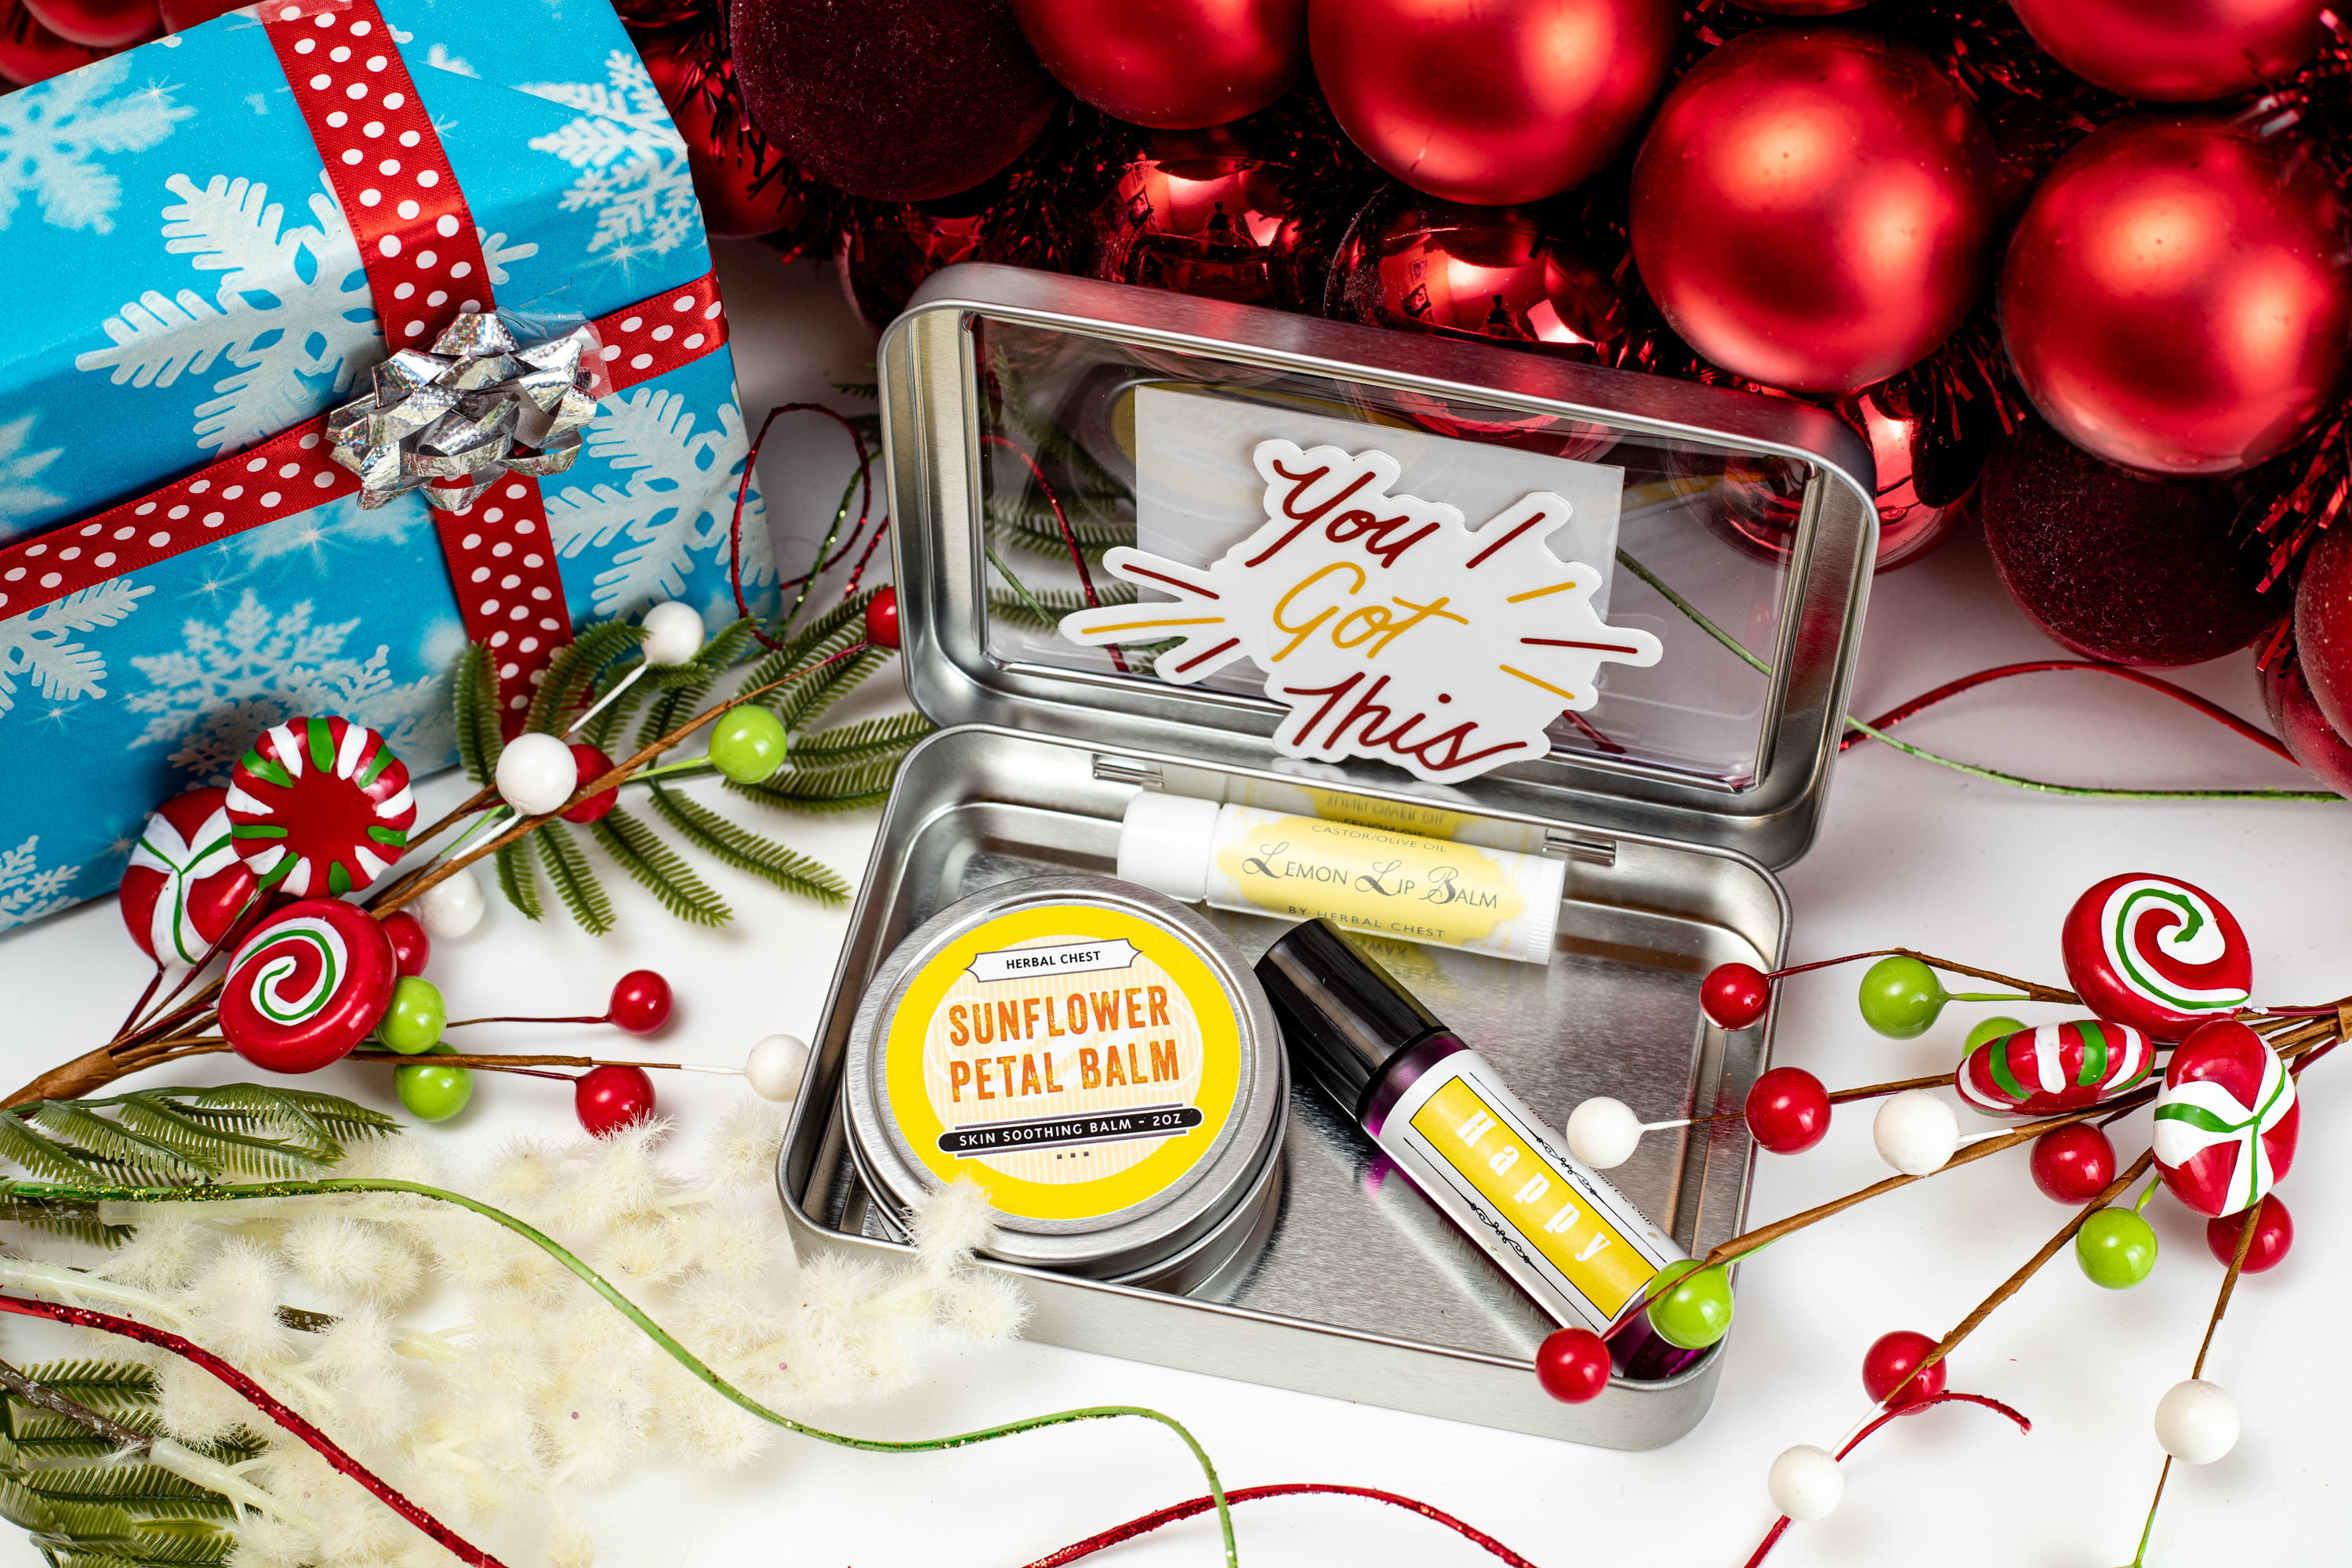 You Got This Wellness Self Care Kit Cheer Up Encouragement Gift Set